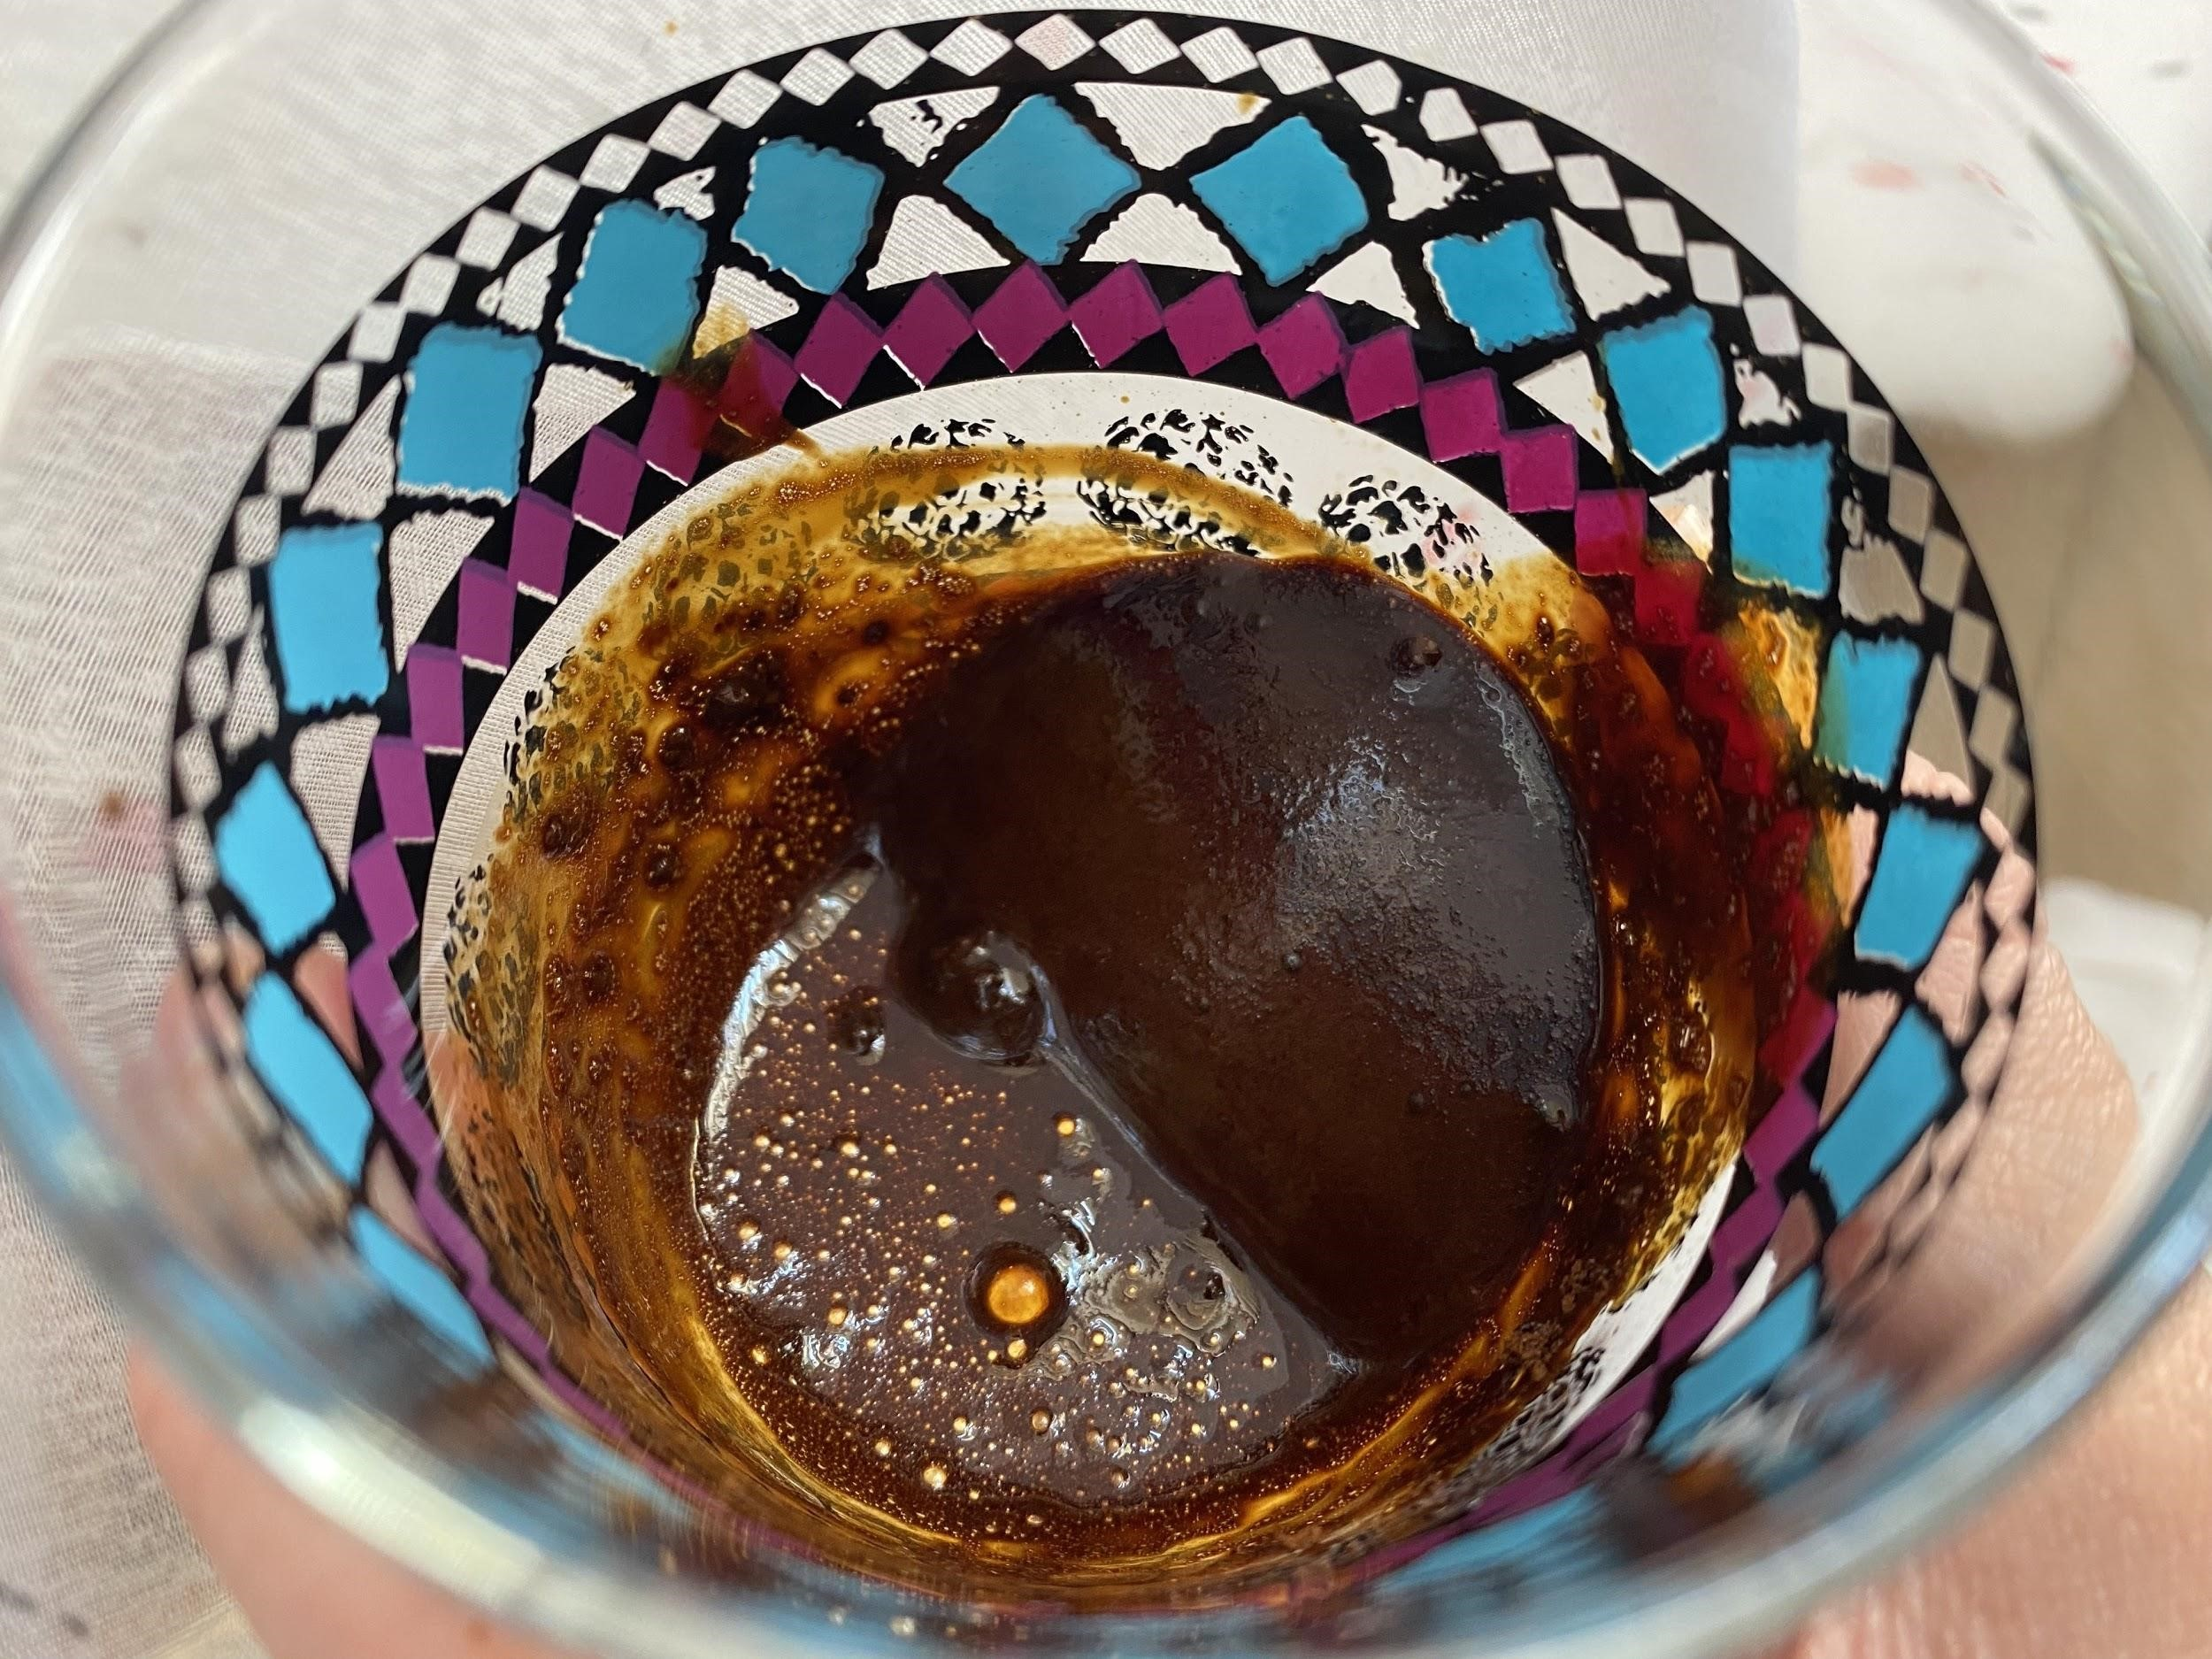 a close up of a coffee in a cup